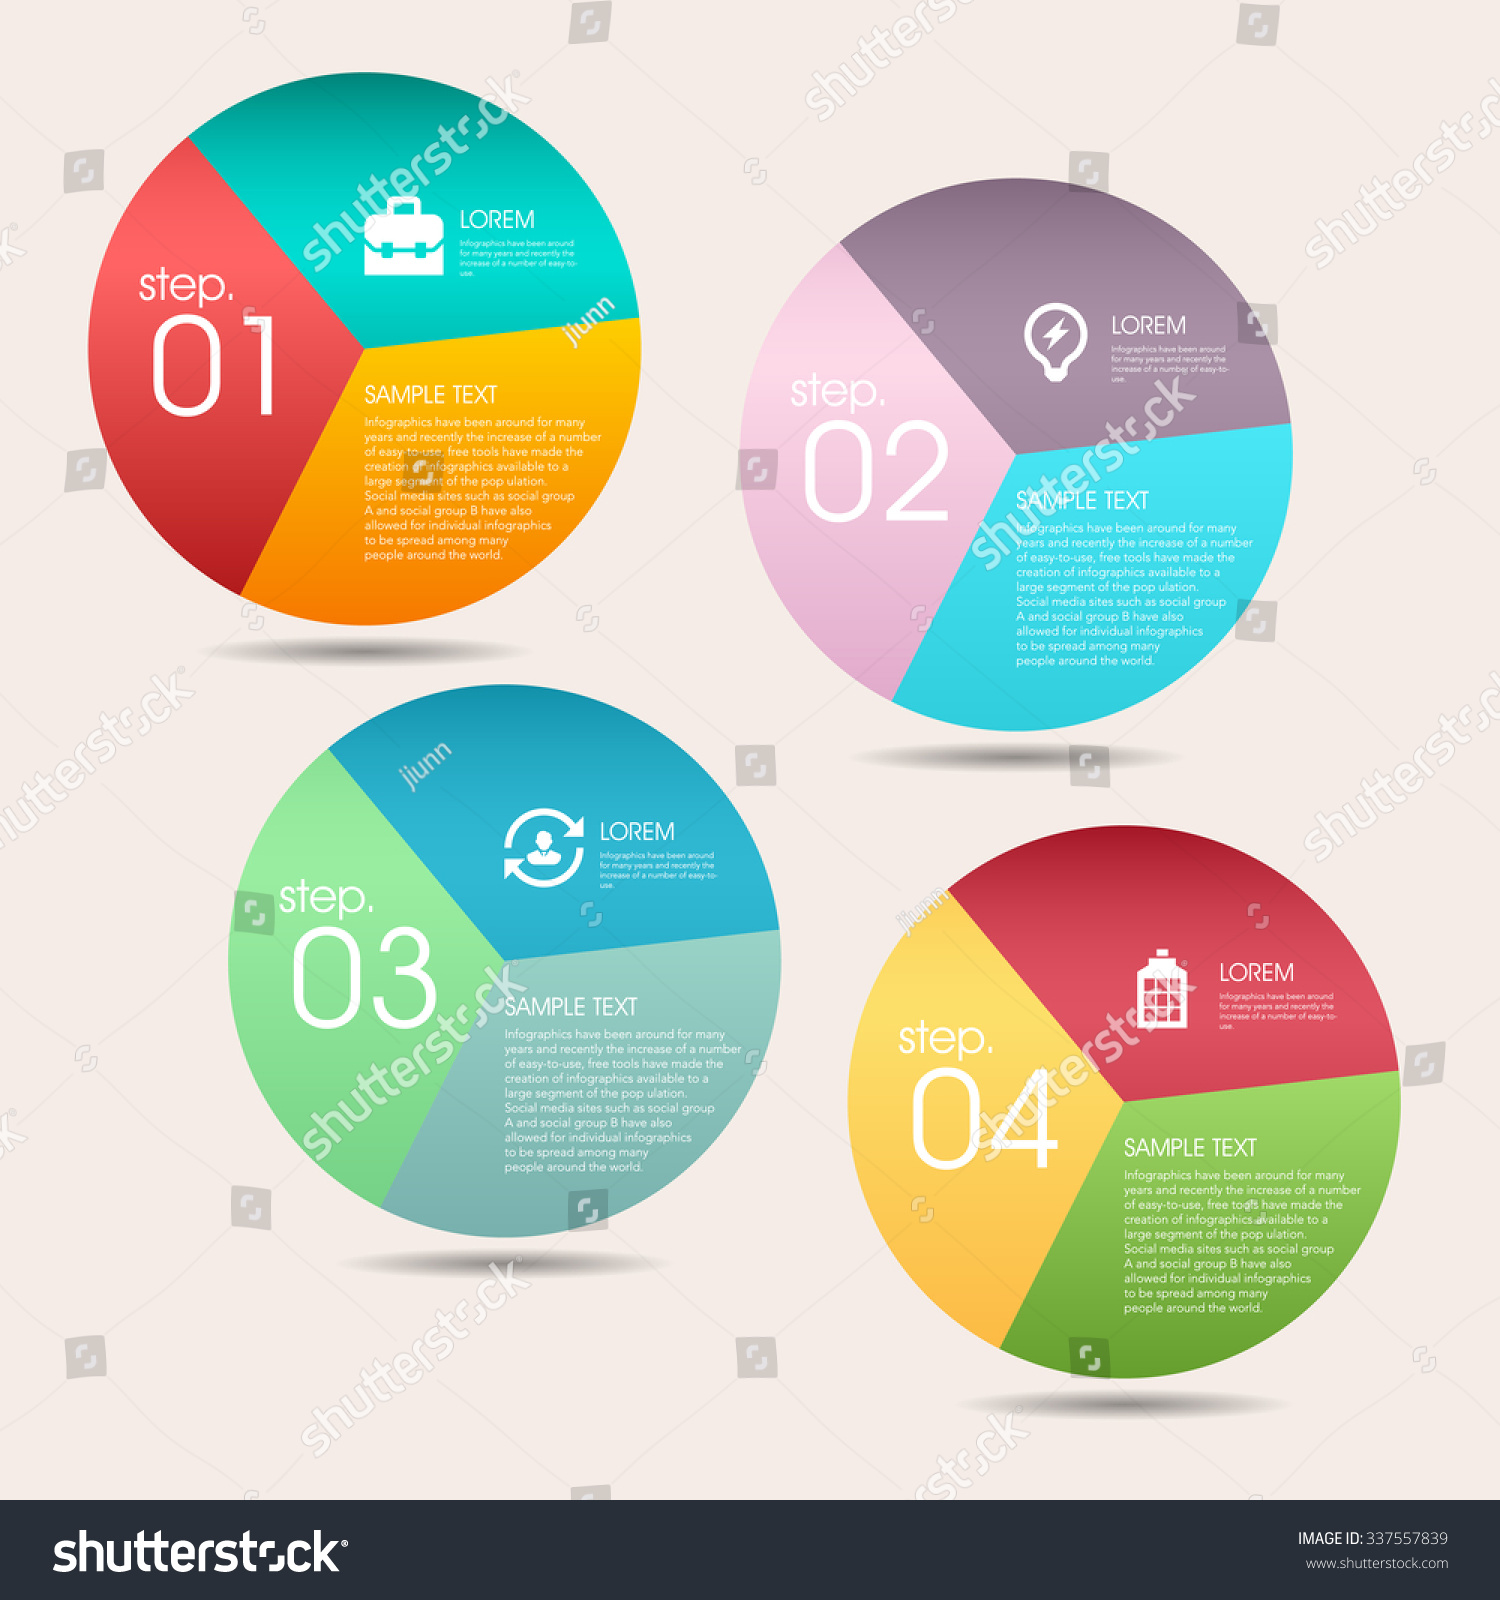 Modern vector abstract pie chart infographic stock vector modern vector abstract pie chart infographic elementsn be used for workflow layout diagram nvjuhfo Gallery